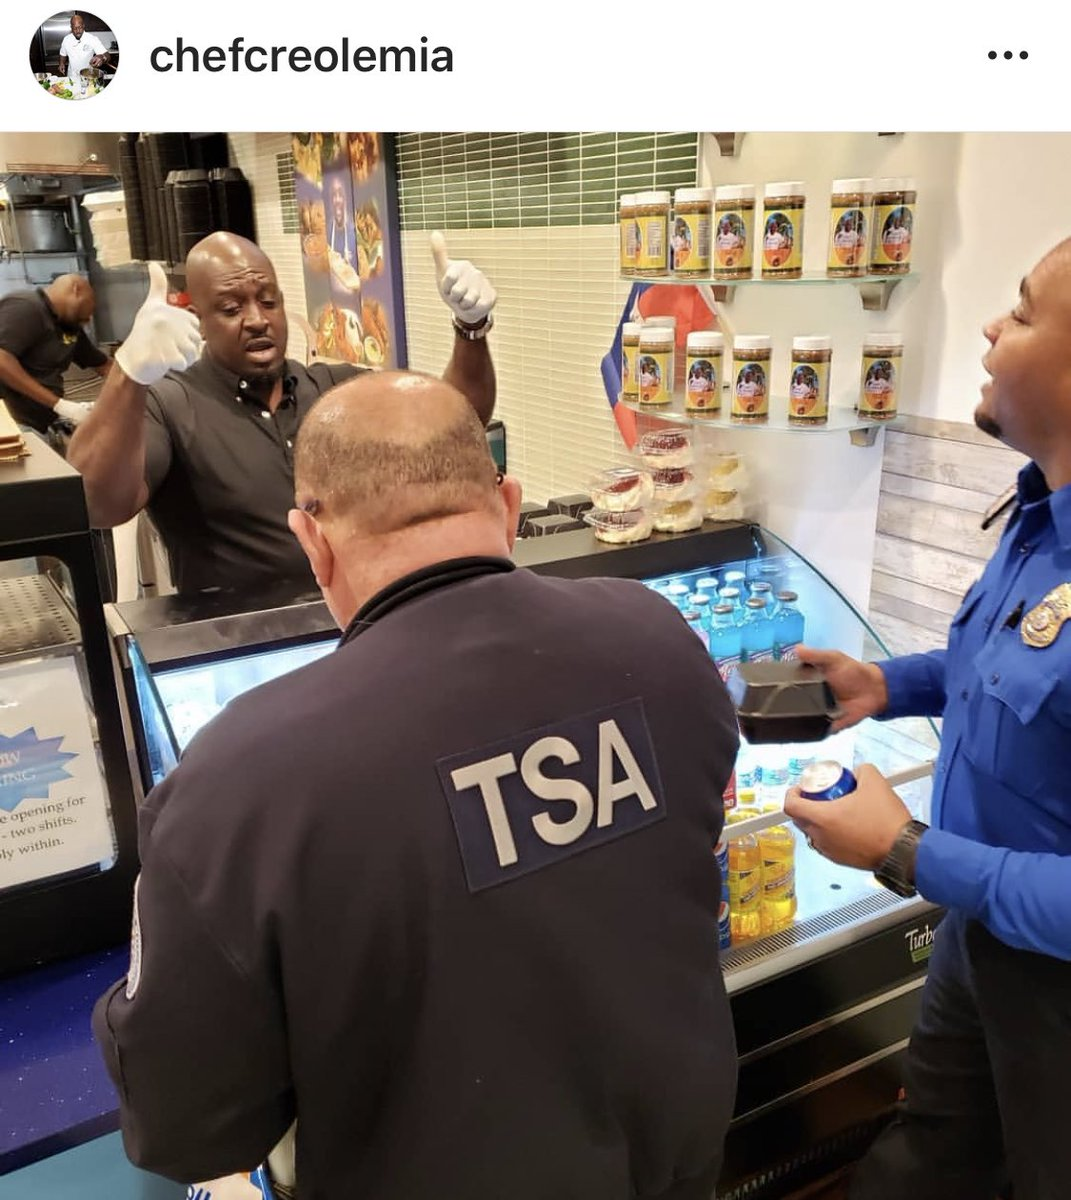 Chef Creole, a Haitian restaurant inside Miami International Airport, gave out hundreds of free meals to TSA workers who aren't getting paid due to the government shutdown  https:// wsvn.com/news/local/mia mis-chef-creole-provides-free-meals-for-tsa-at-mia/ &nbsp; … <br>http://pic.twitter.com/ezPDnZnuNh